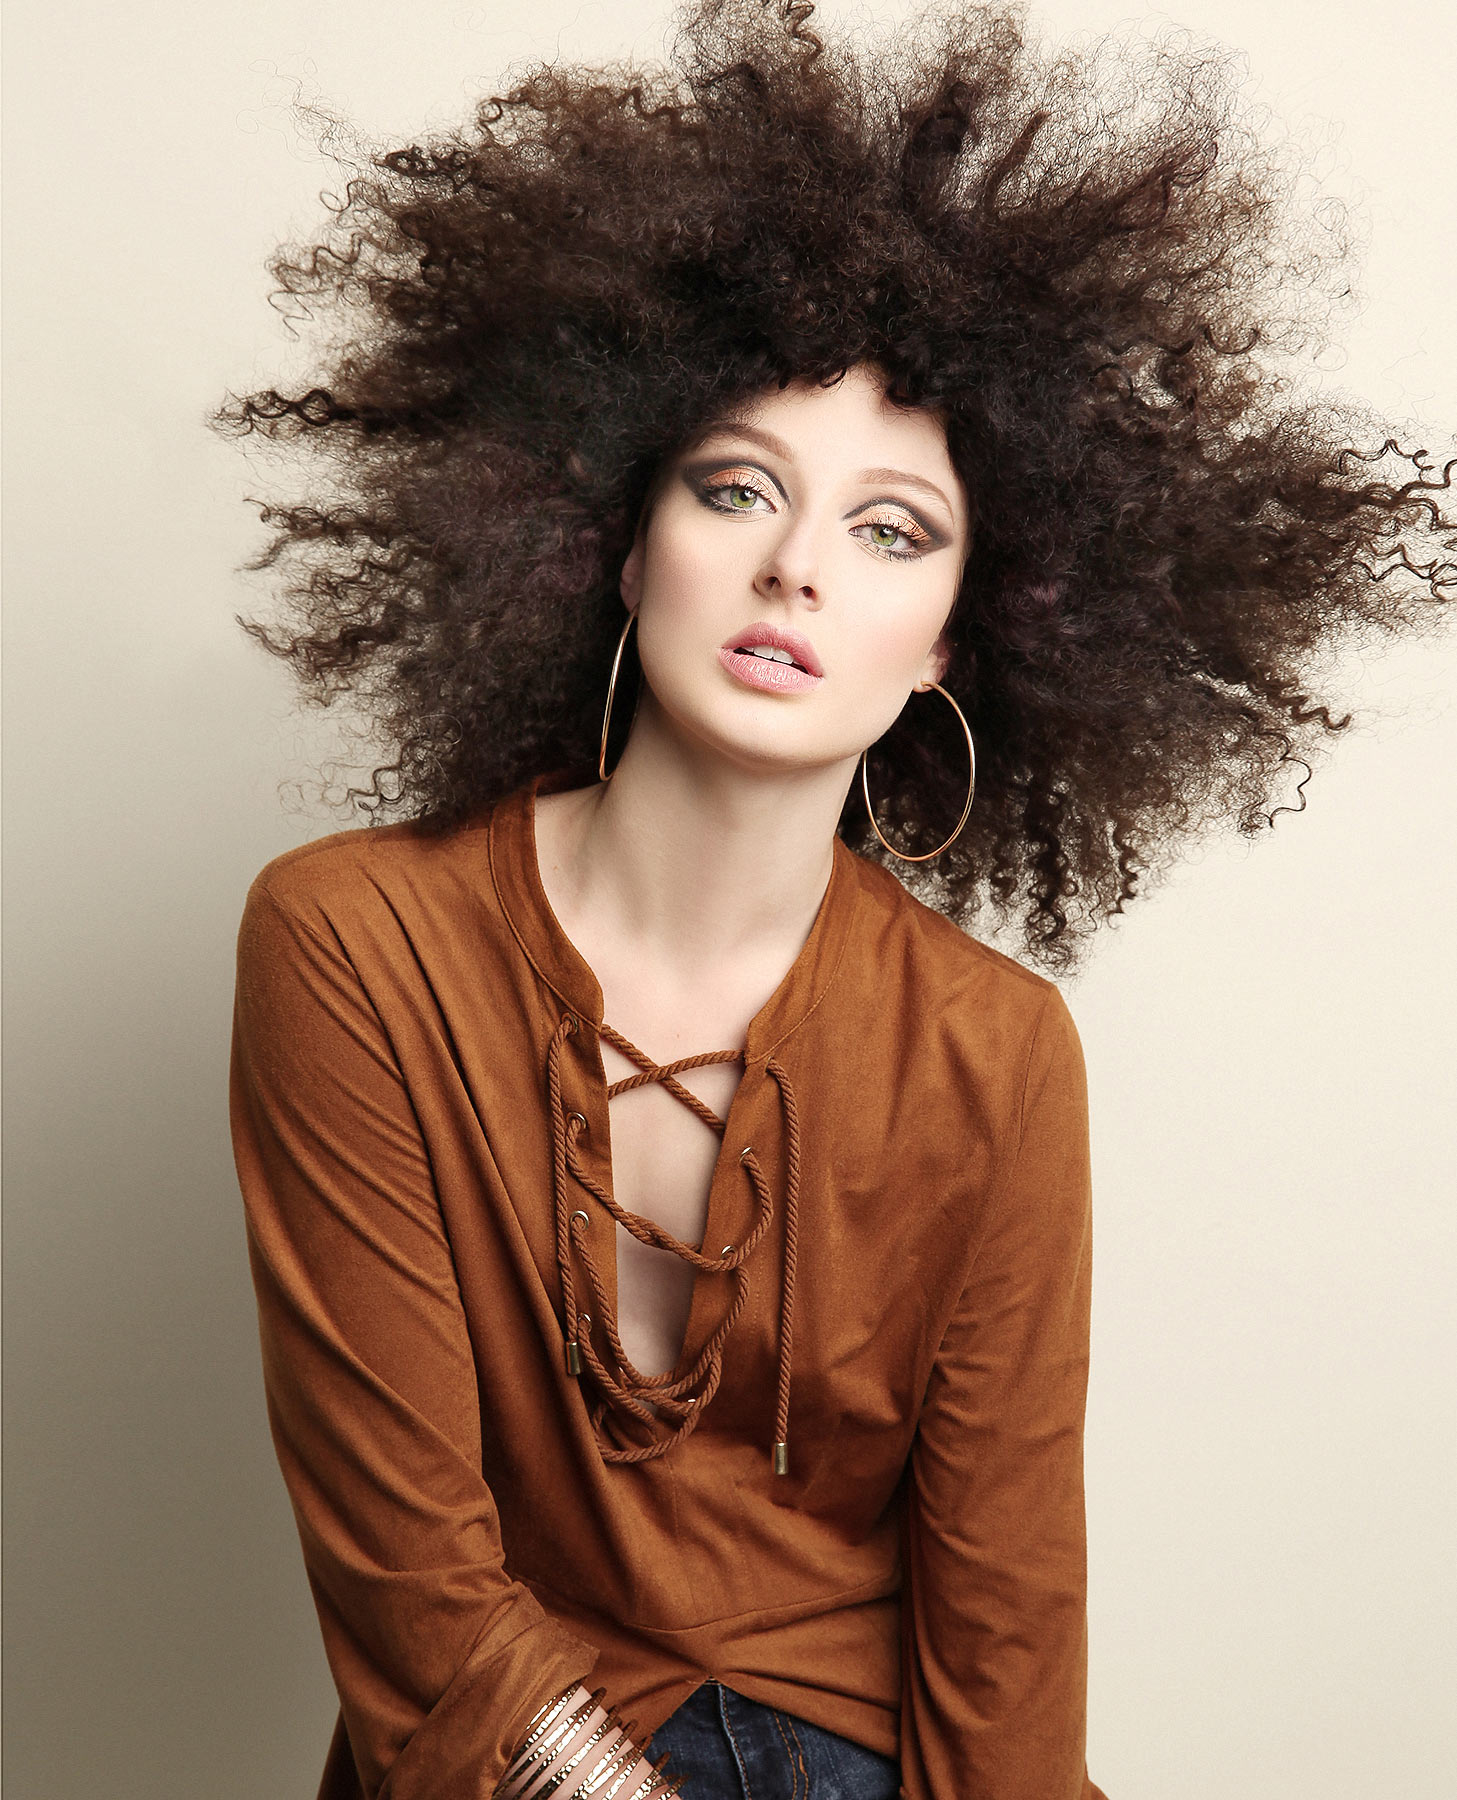 hair-fashion-beauty-photographers-london-toronto-ontario-paula-tizzard-julie-vriesinga